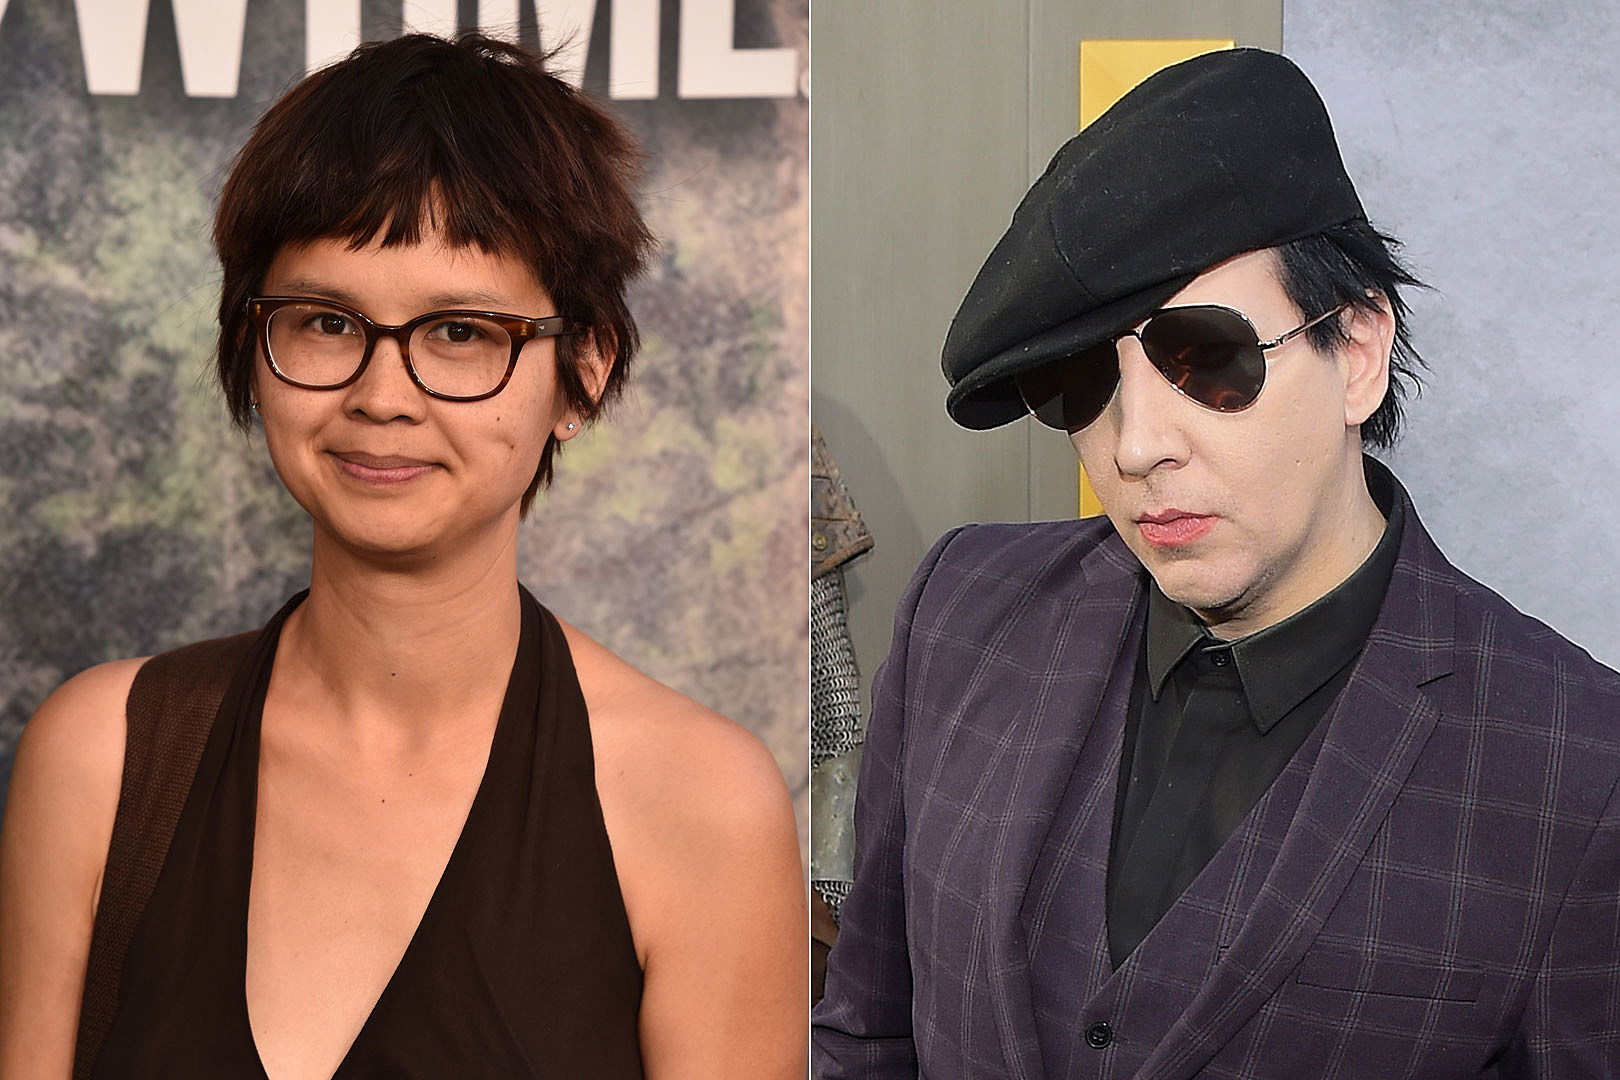 Actress Charlyne Yi Accuses Marilyn Manson Of Harassment